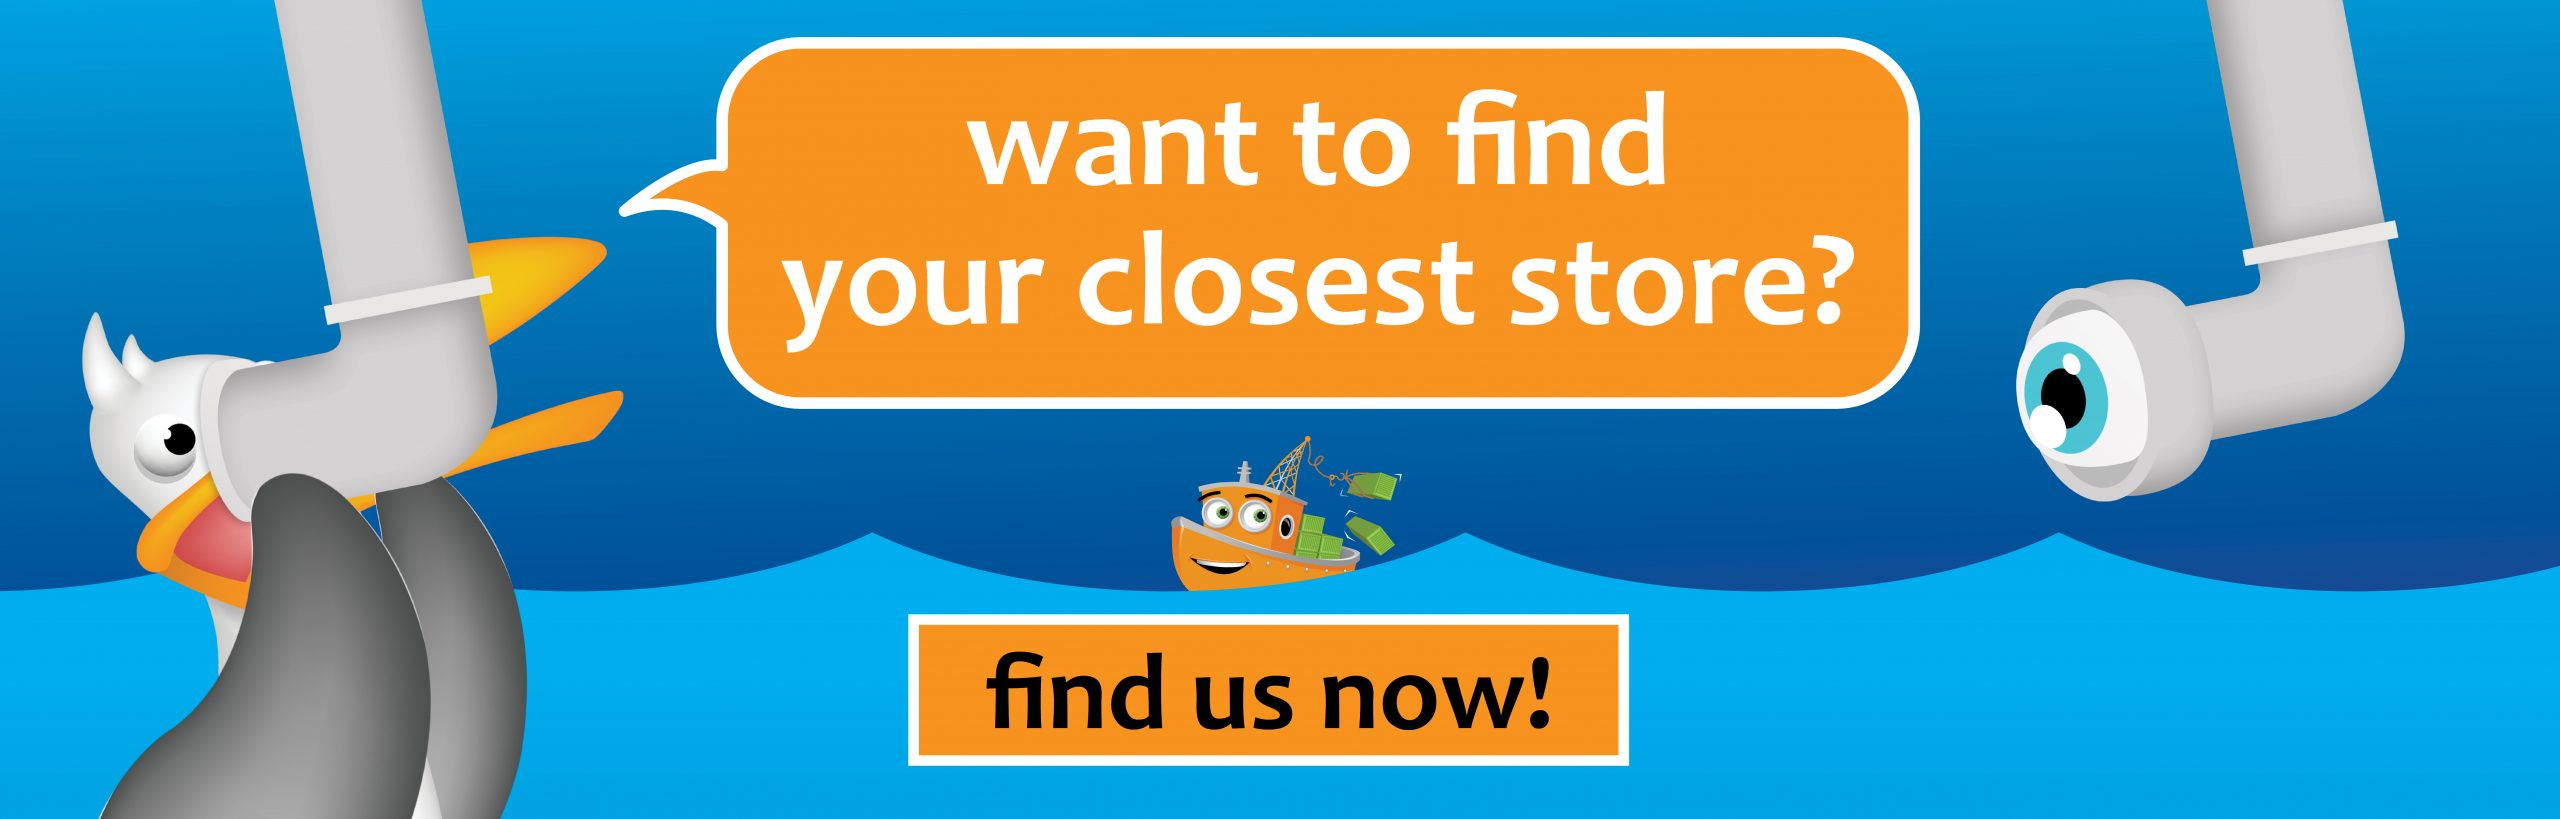 WANT TO FIND YOUR CLOSEST STORE